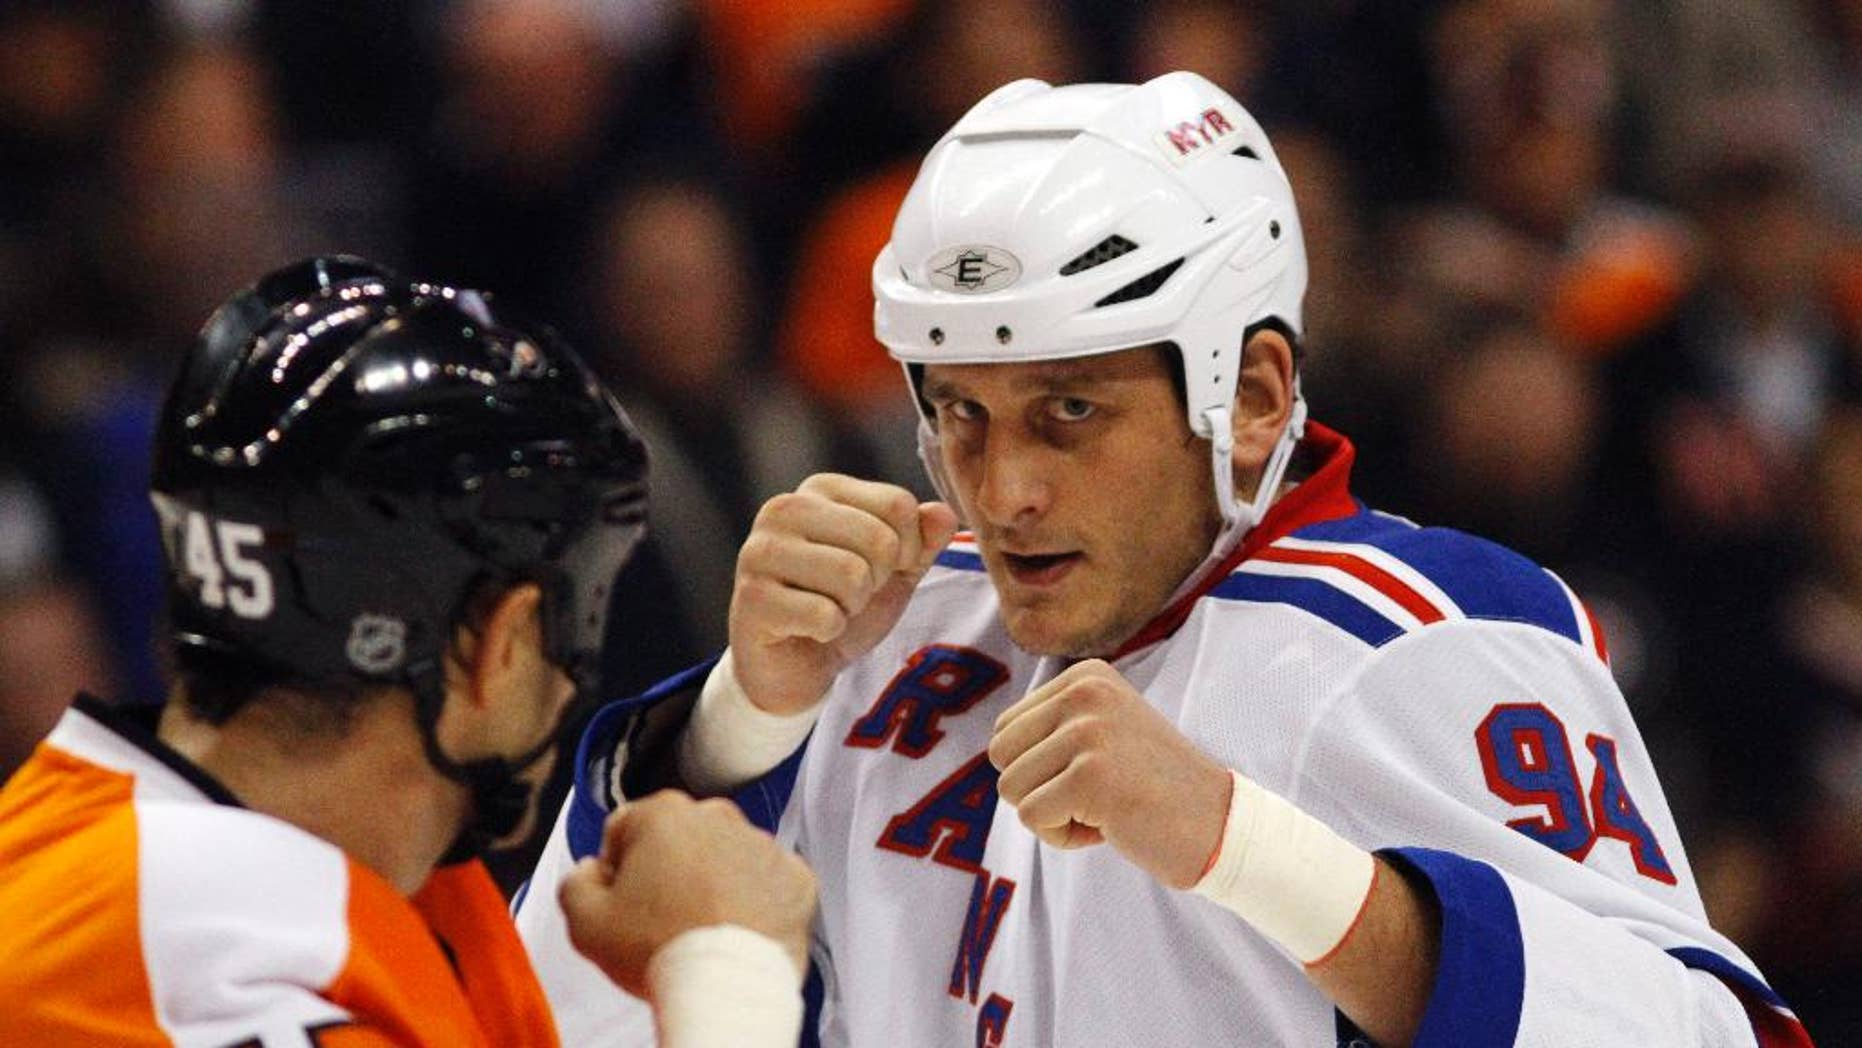 FILE - In this Nov. 4, 2010, file photo, Philadelphia Flyers' Jody Shelley, left, and New York Rangers' Derek Boogaard fight during an NHL hockey game in Philadelphia. A former minor league hockey player has been arrested on charges he sold illegally obtained prescription painkillers to former hockey player Derek Boogaard of the Rangers and the Minnesota Wild who died of an accidental overdose. Jordan Hart was arrested Tuesday, Sept. 9, 2014, on charges in a federal indictment unsealed in New York.  (AP Photo/Matt Slocum, File)